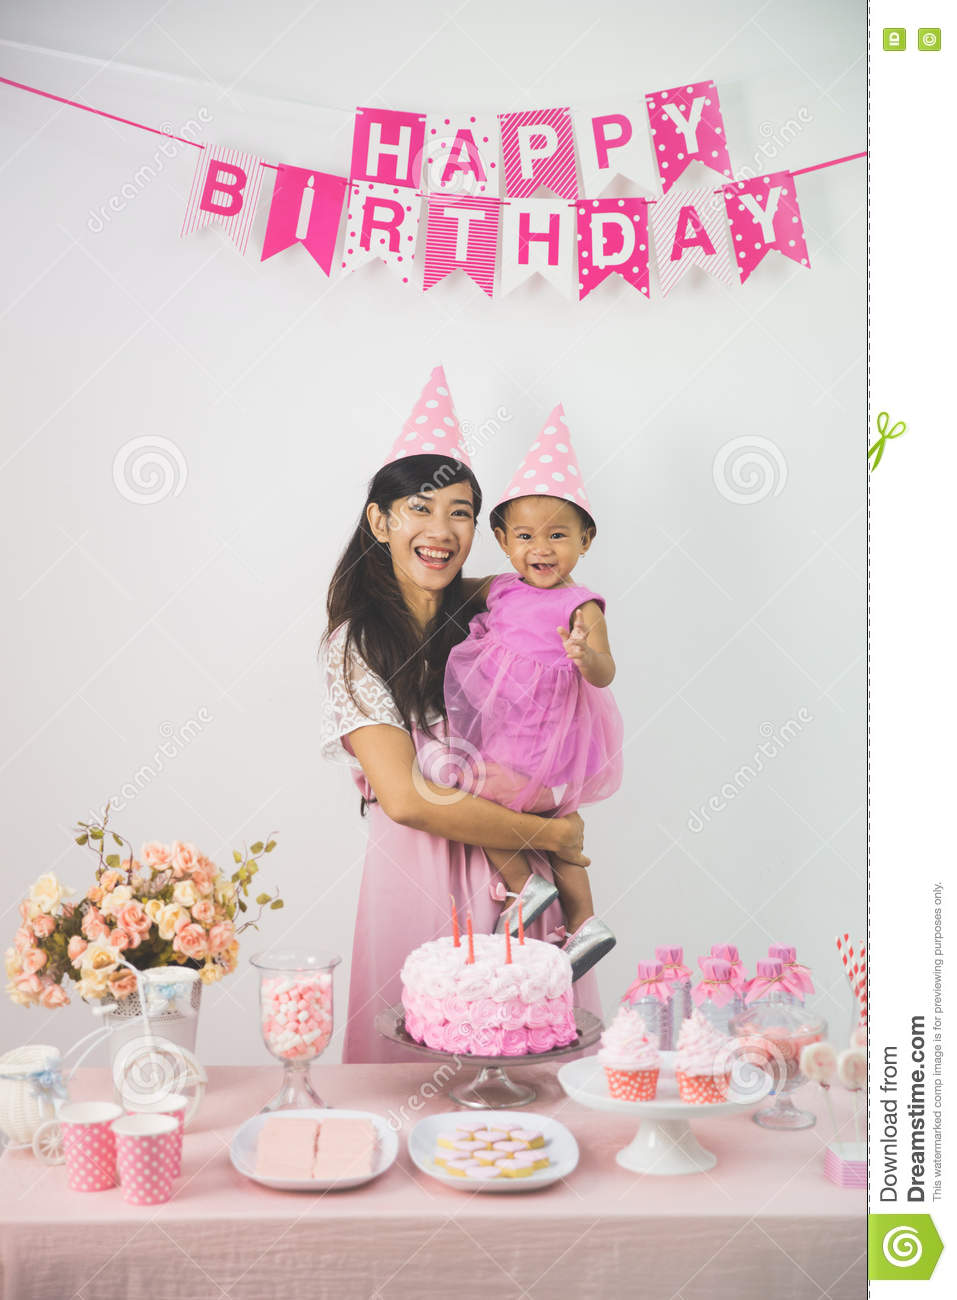 Mother And Daughter Celebrating Birthday Stock Image - Image